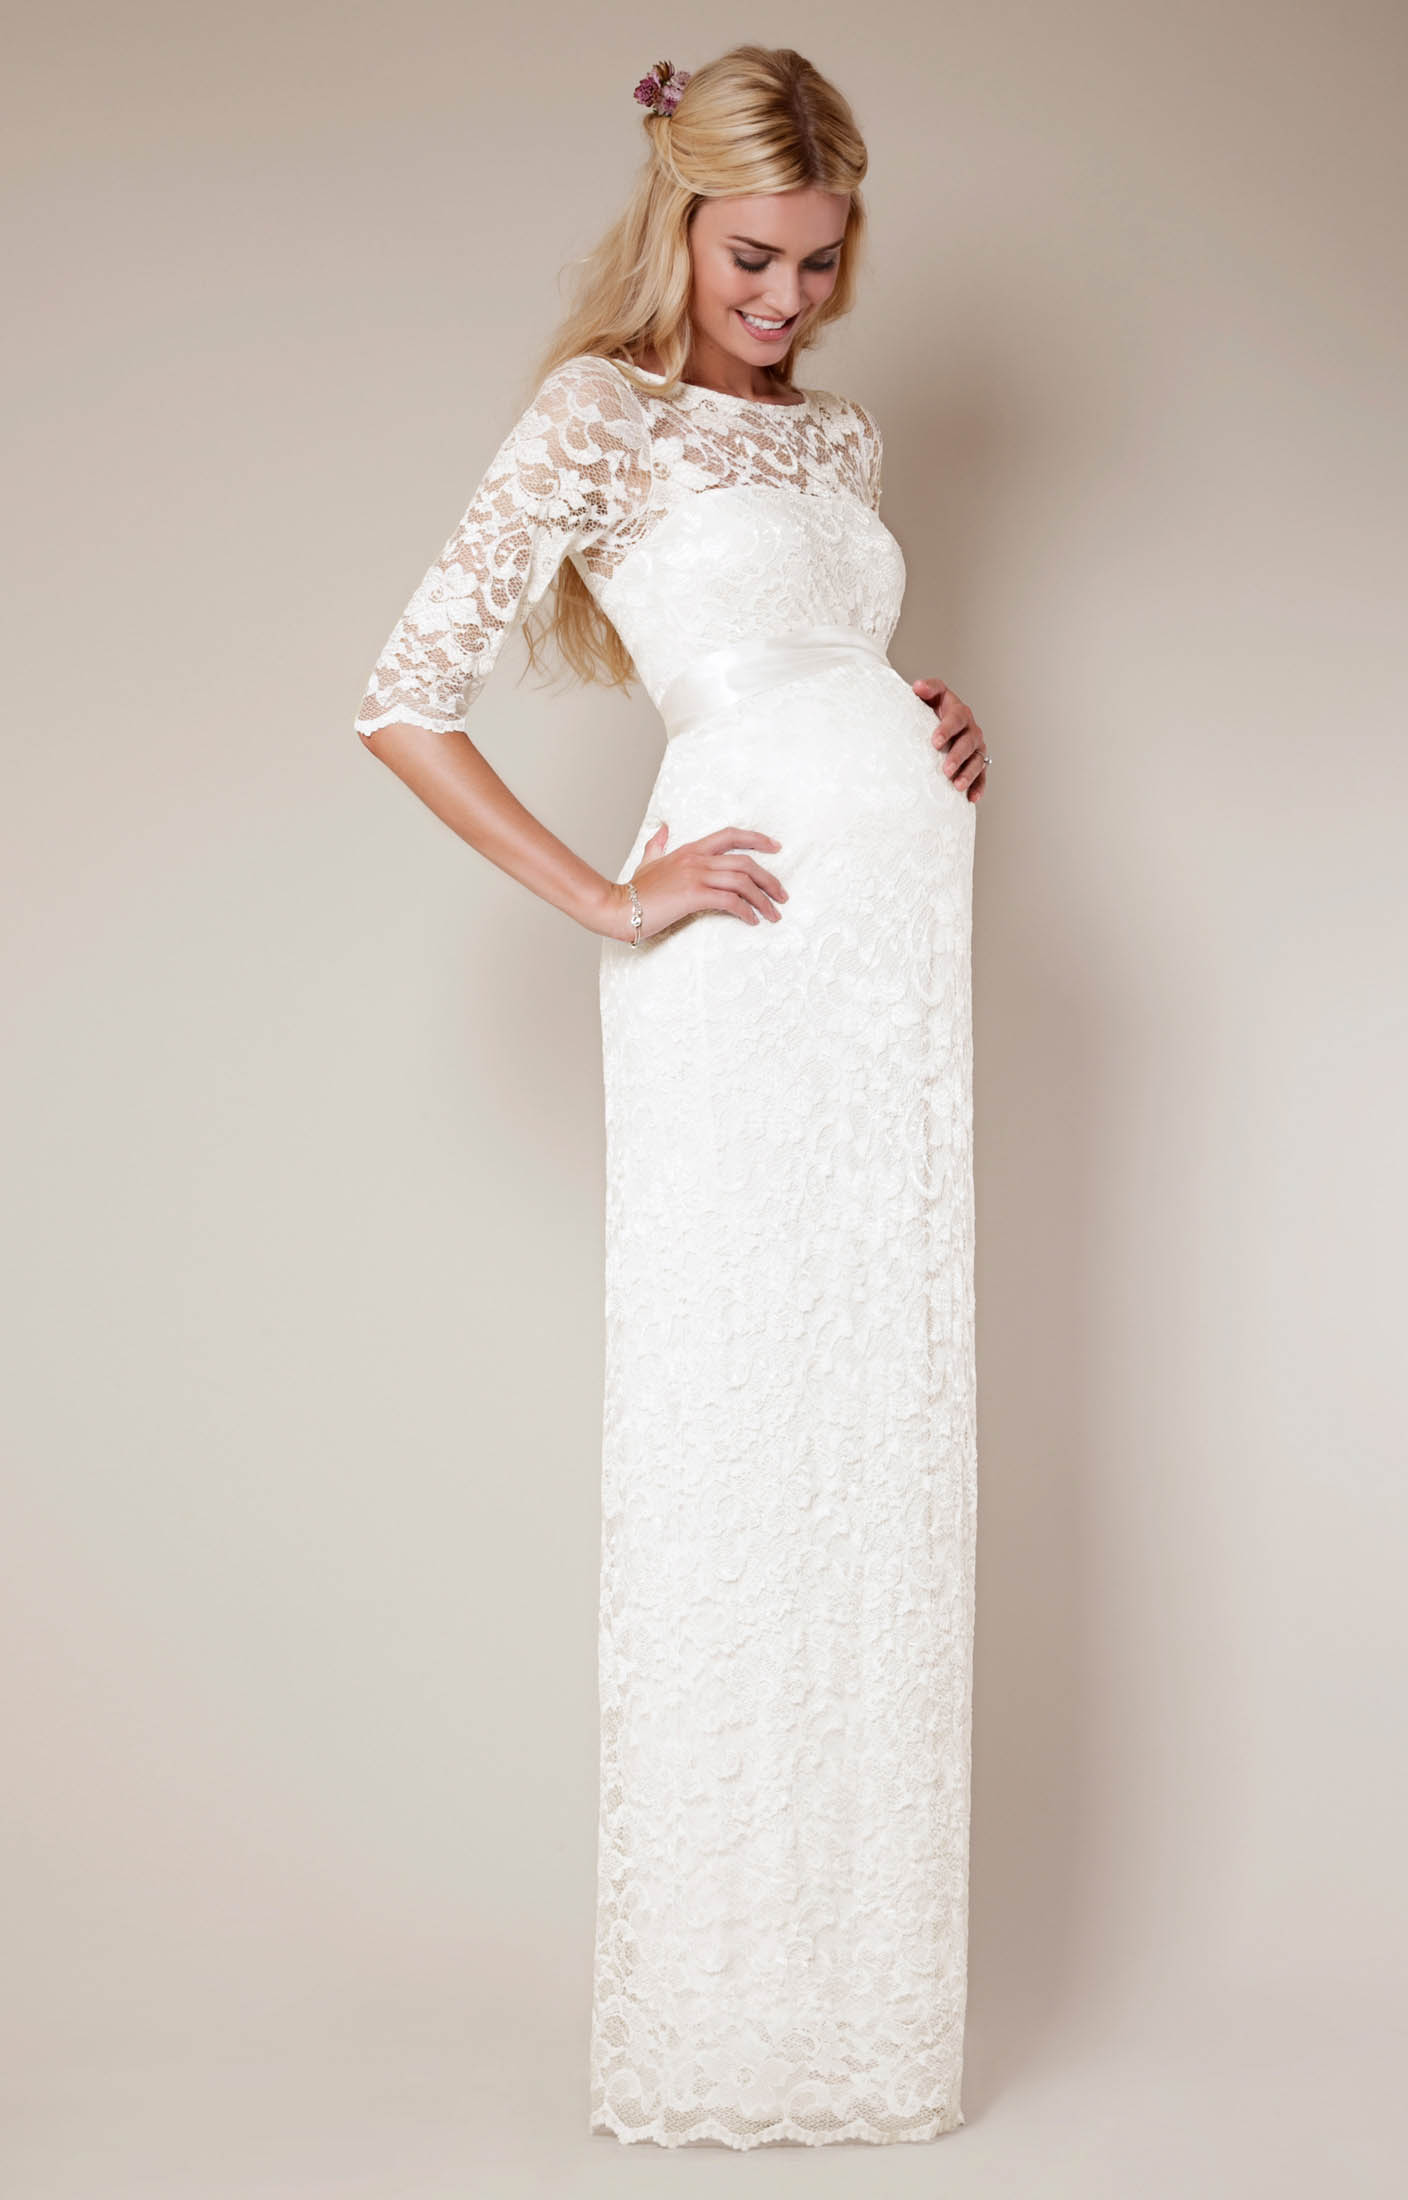 Maternity Wedding Dresses Sophisticated And Chic Carey Fashion